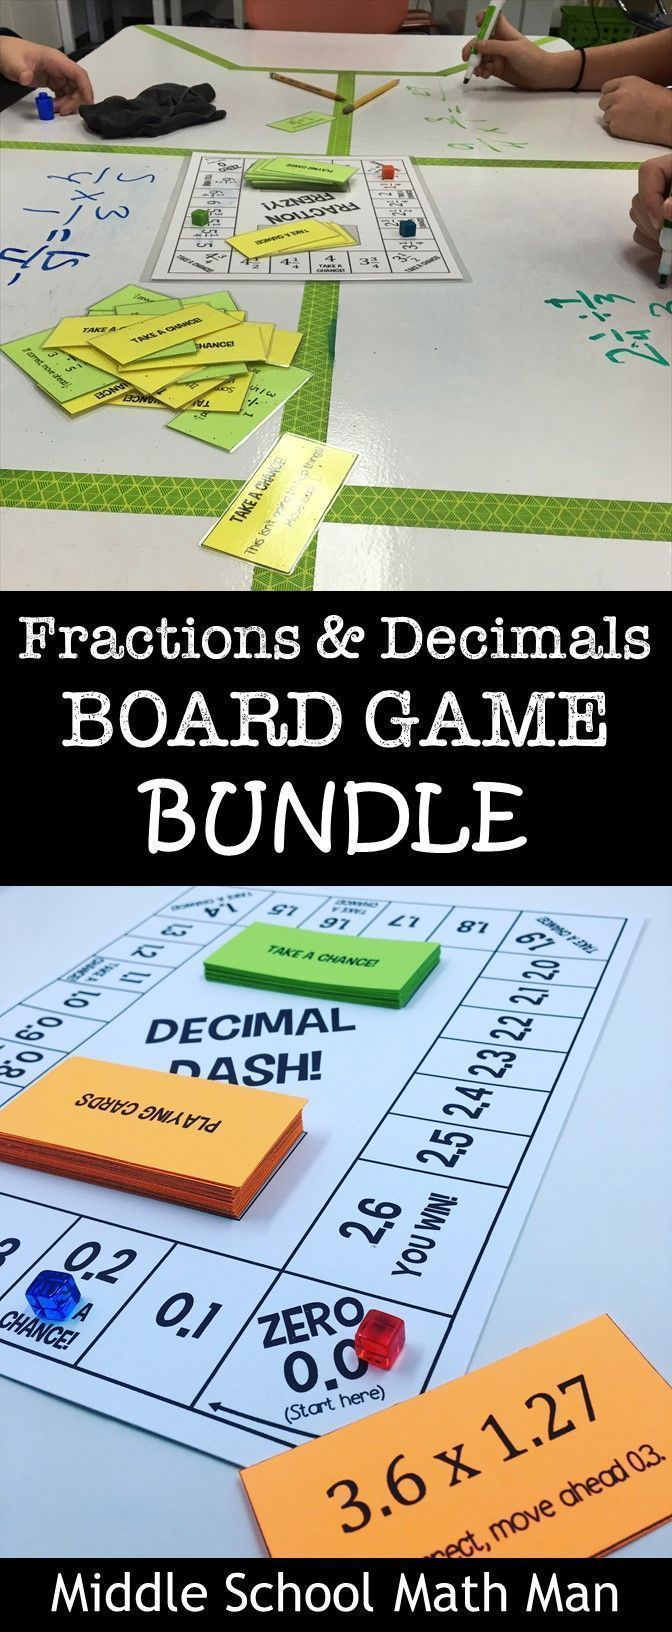 This Fractions and Decimals Board Game Bundle includes 6 math board games to that help students practice adding/subtracting fractions, multiplying fractions, dividing fractions, adding/subtracting decimals, multiplying decimals, and dividing decimals! These games are a great way for students to have fun while learning these important math skills! #mathpracticegames